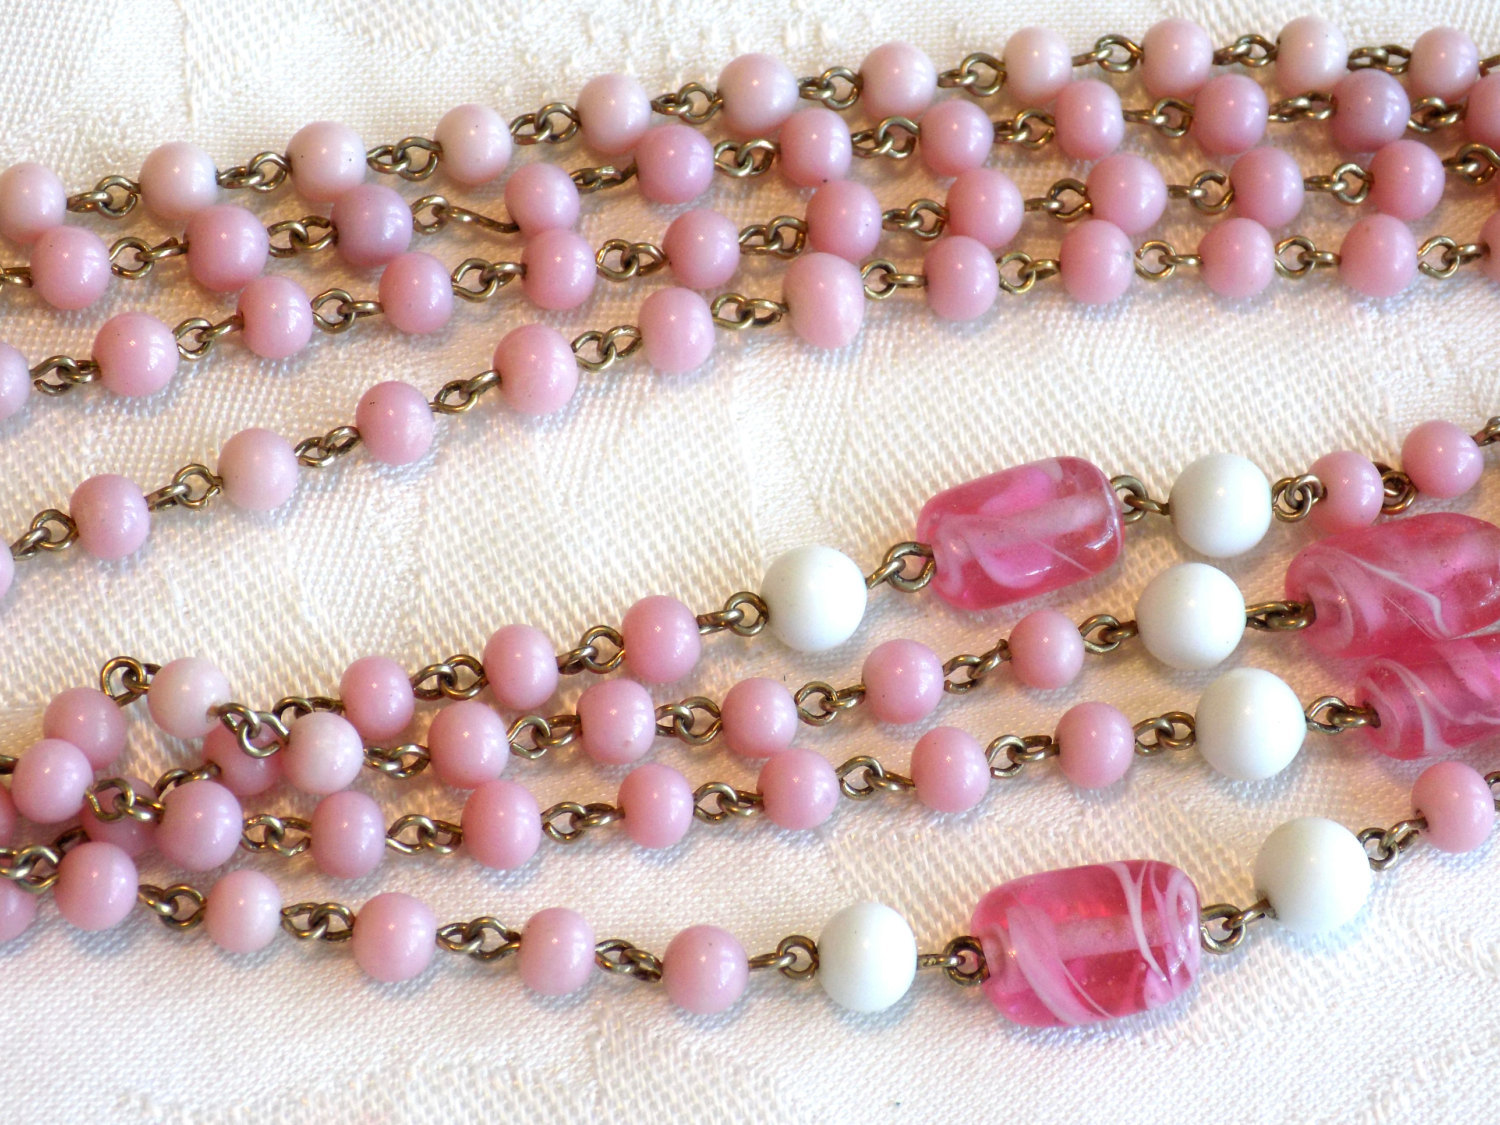 Vintage Coro Beaded Necklace Pink and White Milk Glass Beads and Swirled Pink Gl image 4